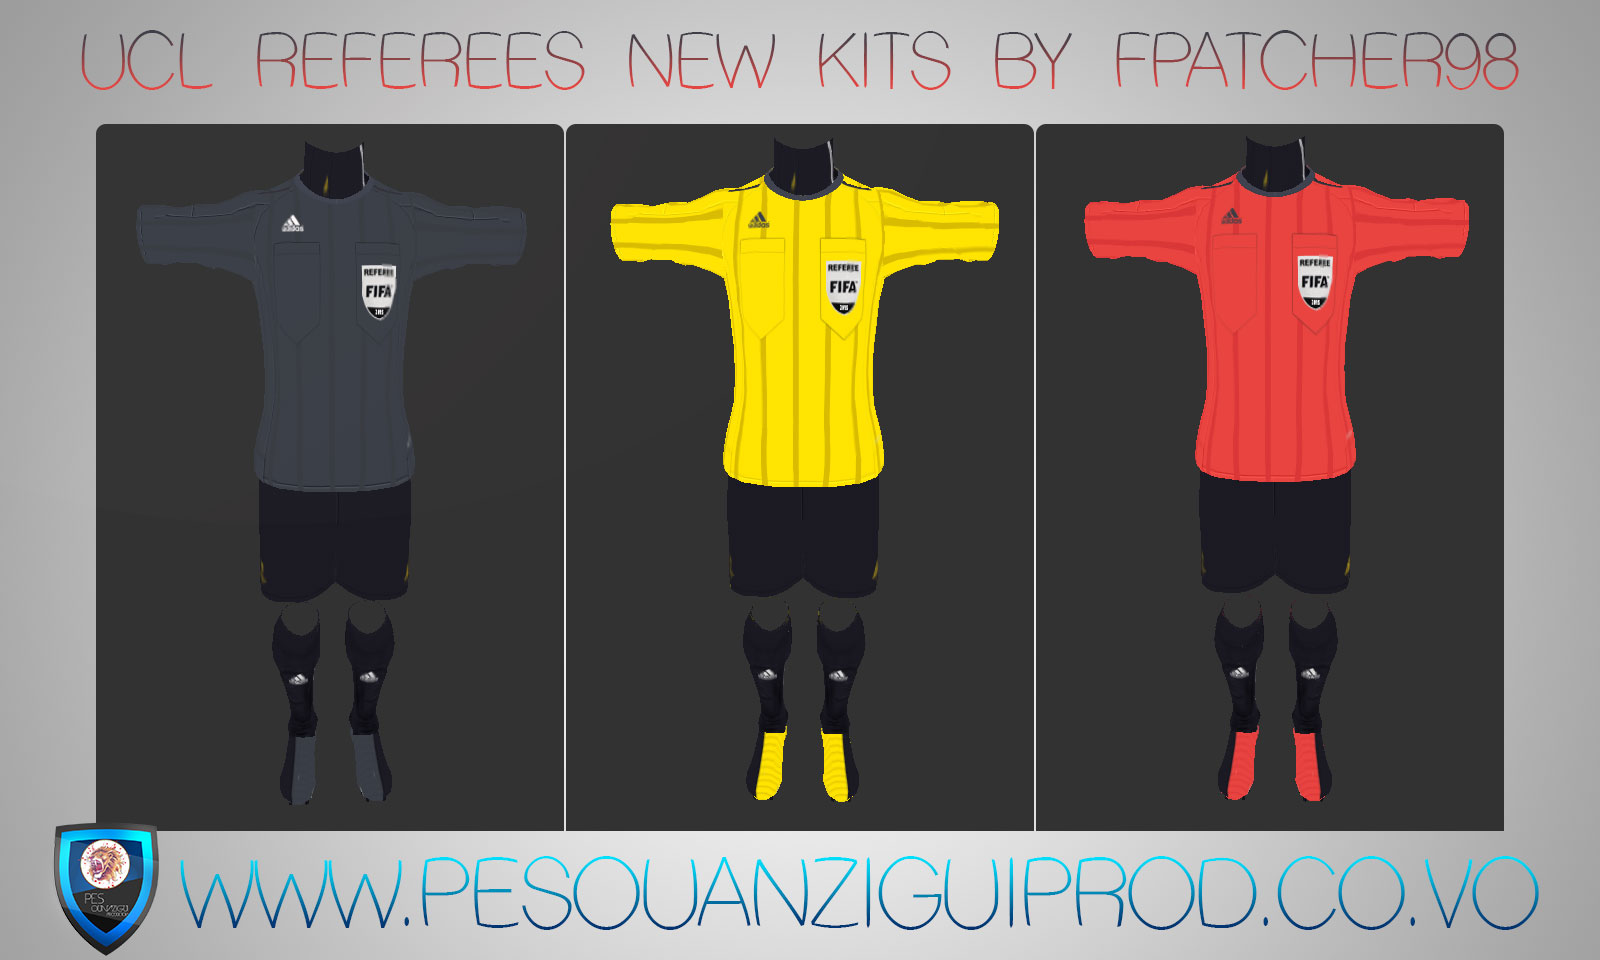 Pes 2013 UEFA CL Referees Kits 2015-2016 By Fpatcher98